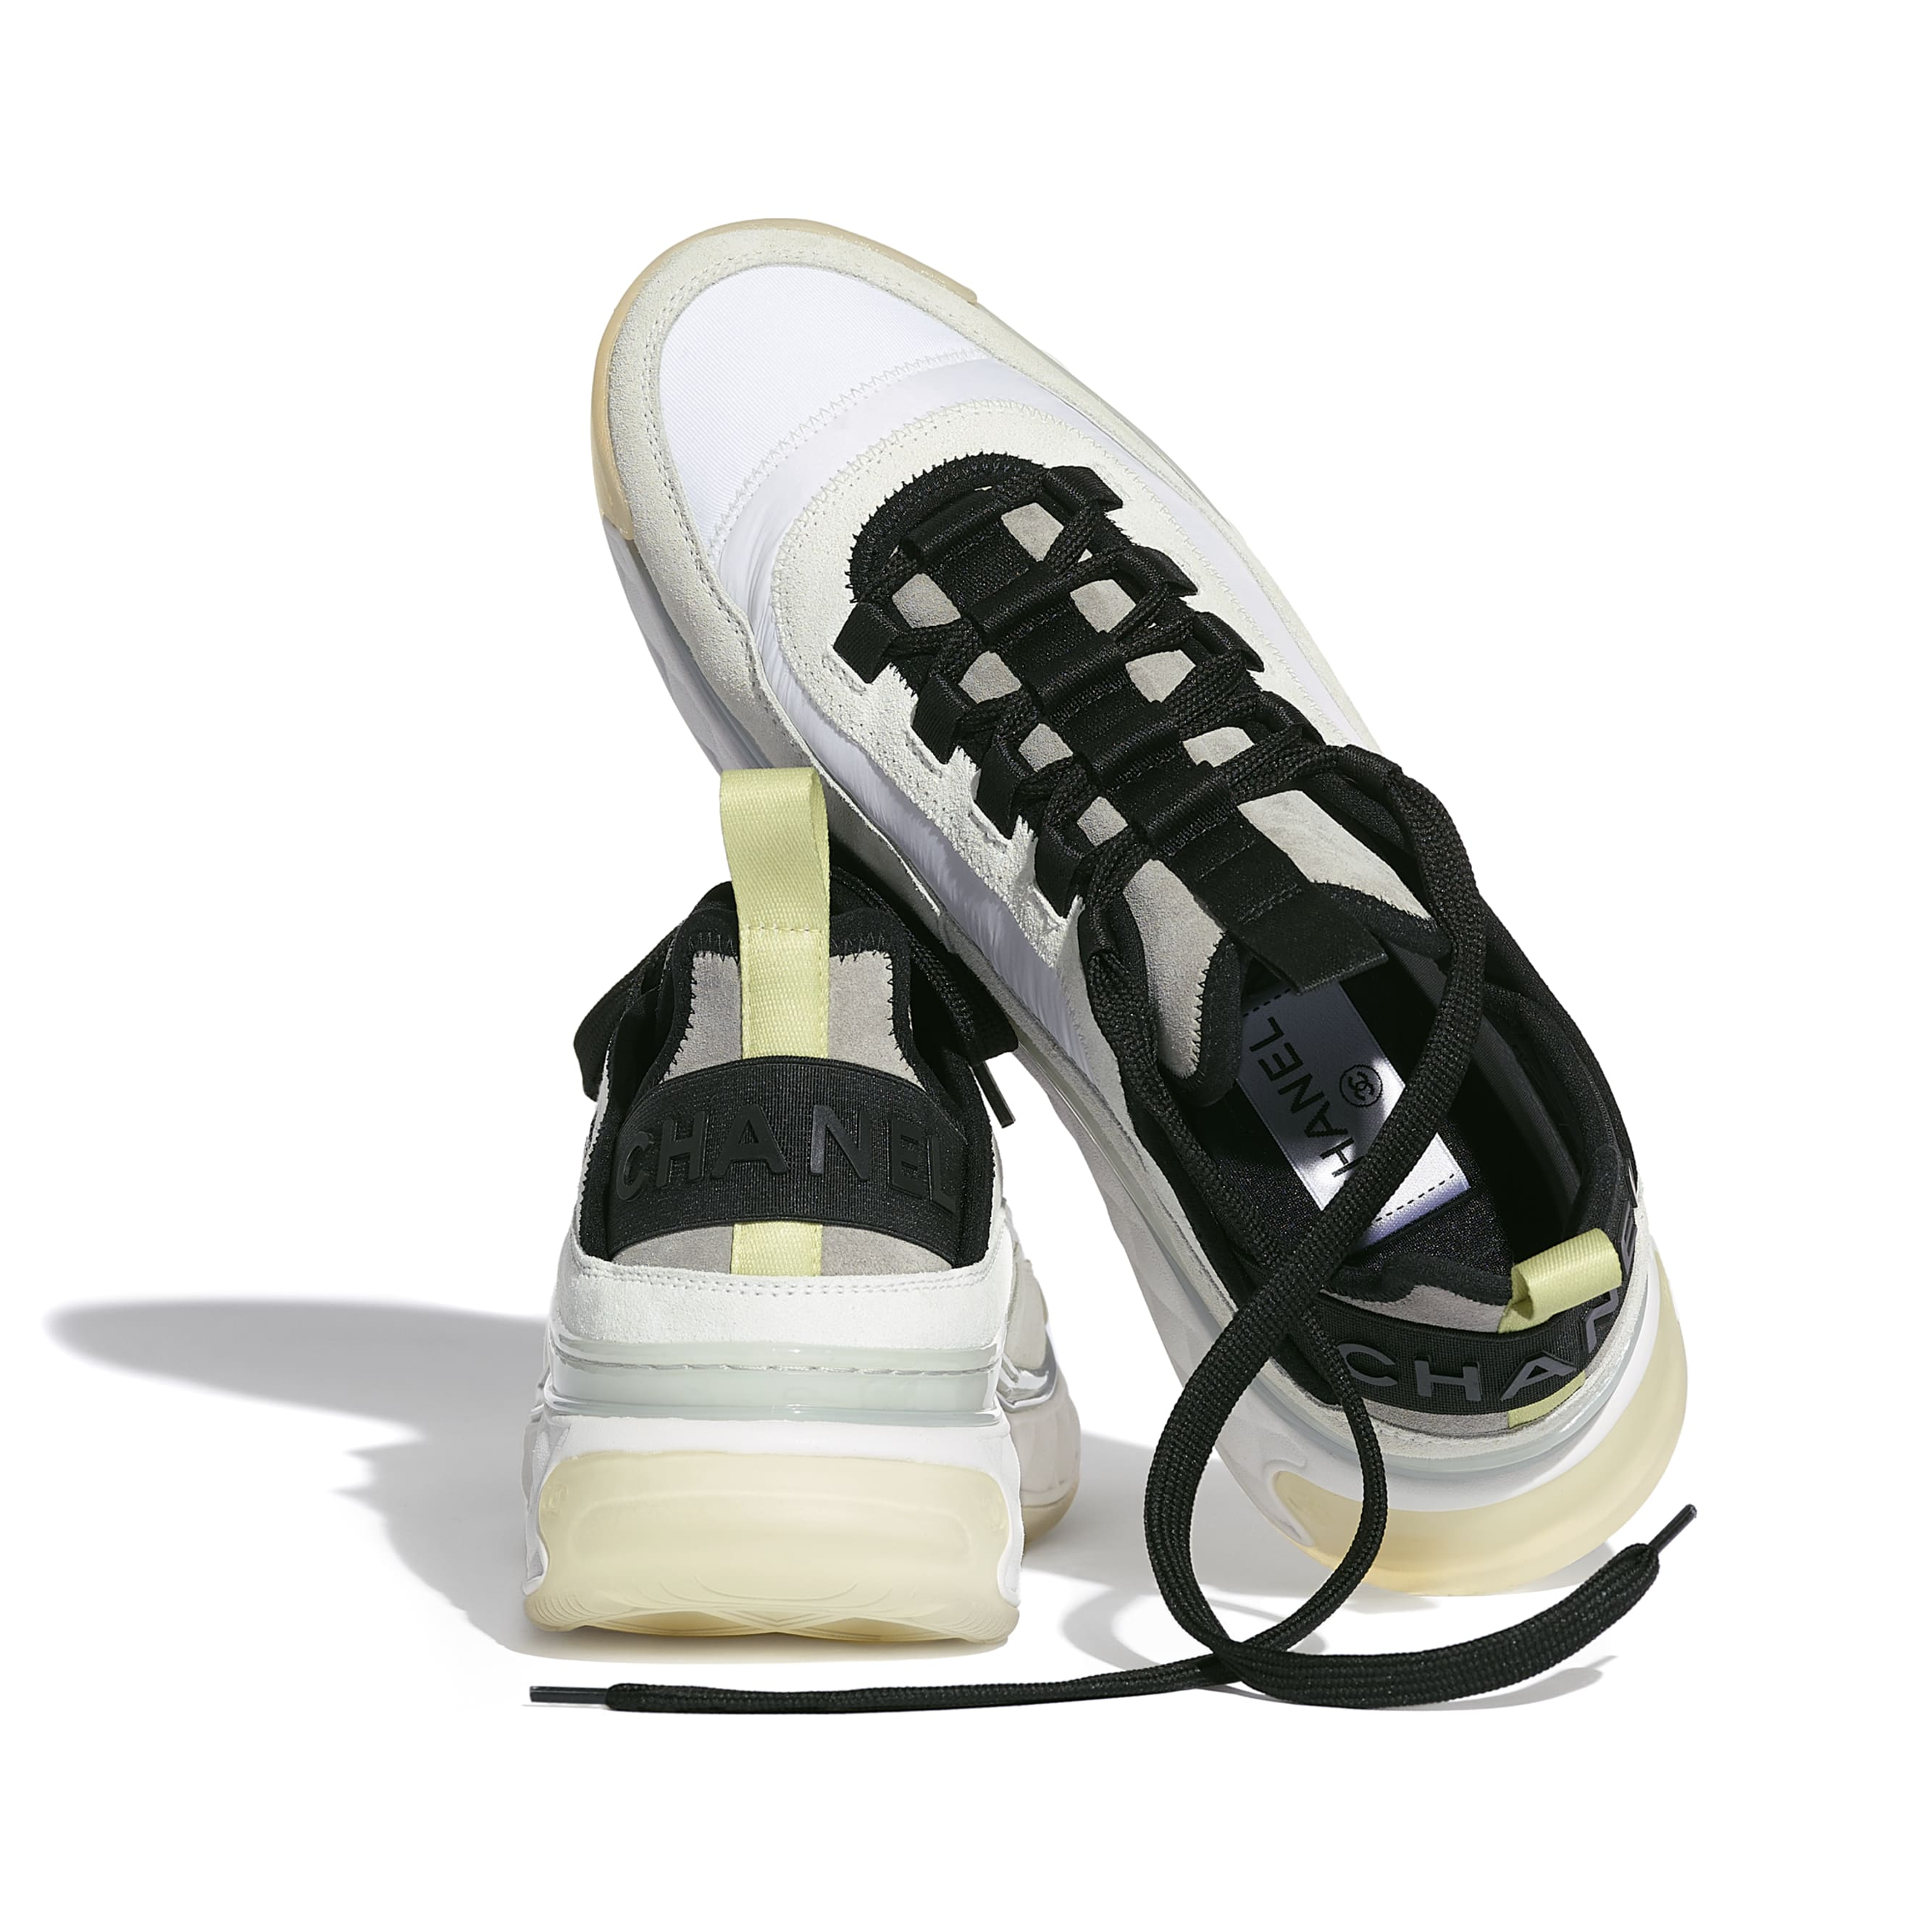 Trainers - White, Grey & Yellow - Suede Calfskin, Nylon & Grosgrain - CHANEL - Extra view - see standard sized version